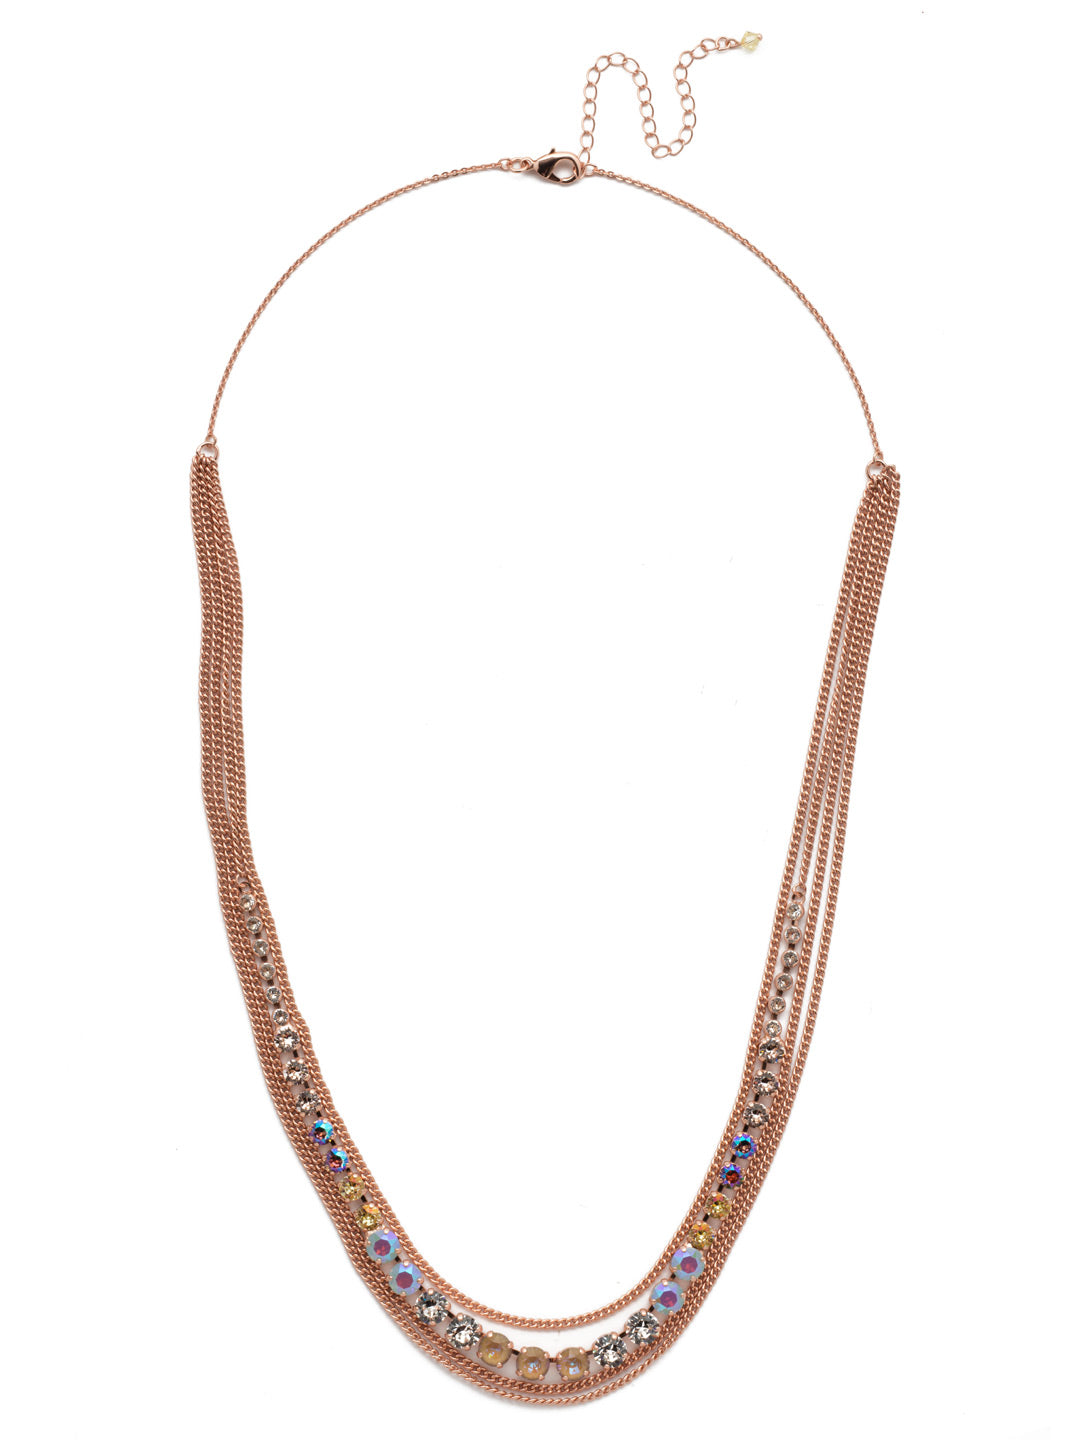 Layer It On Multi-Strand Layered Necklace - NCR73RGROG